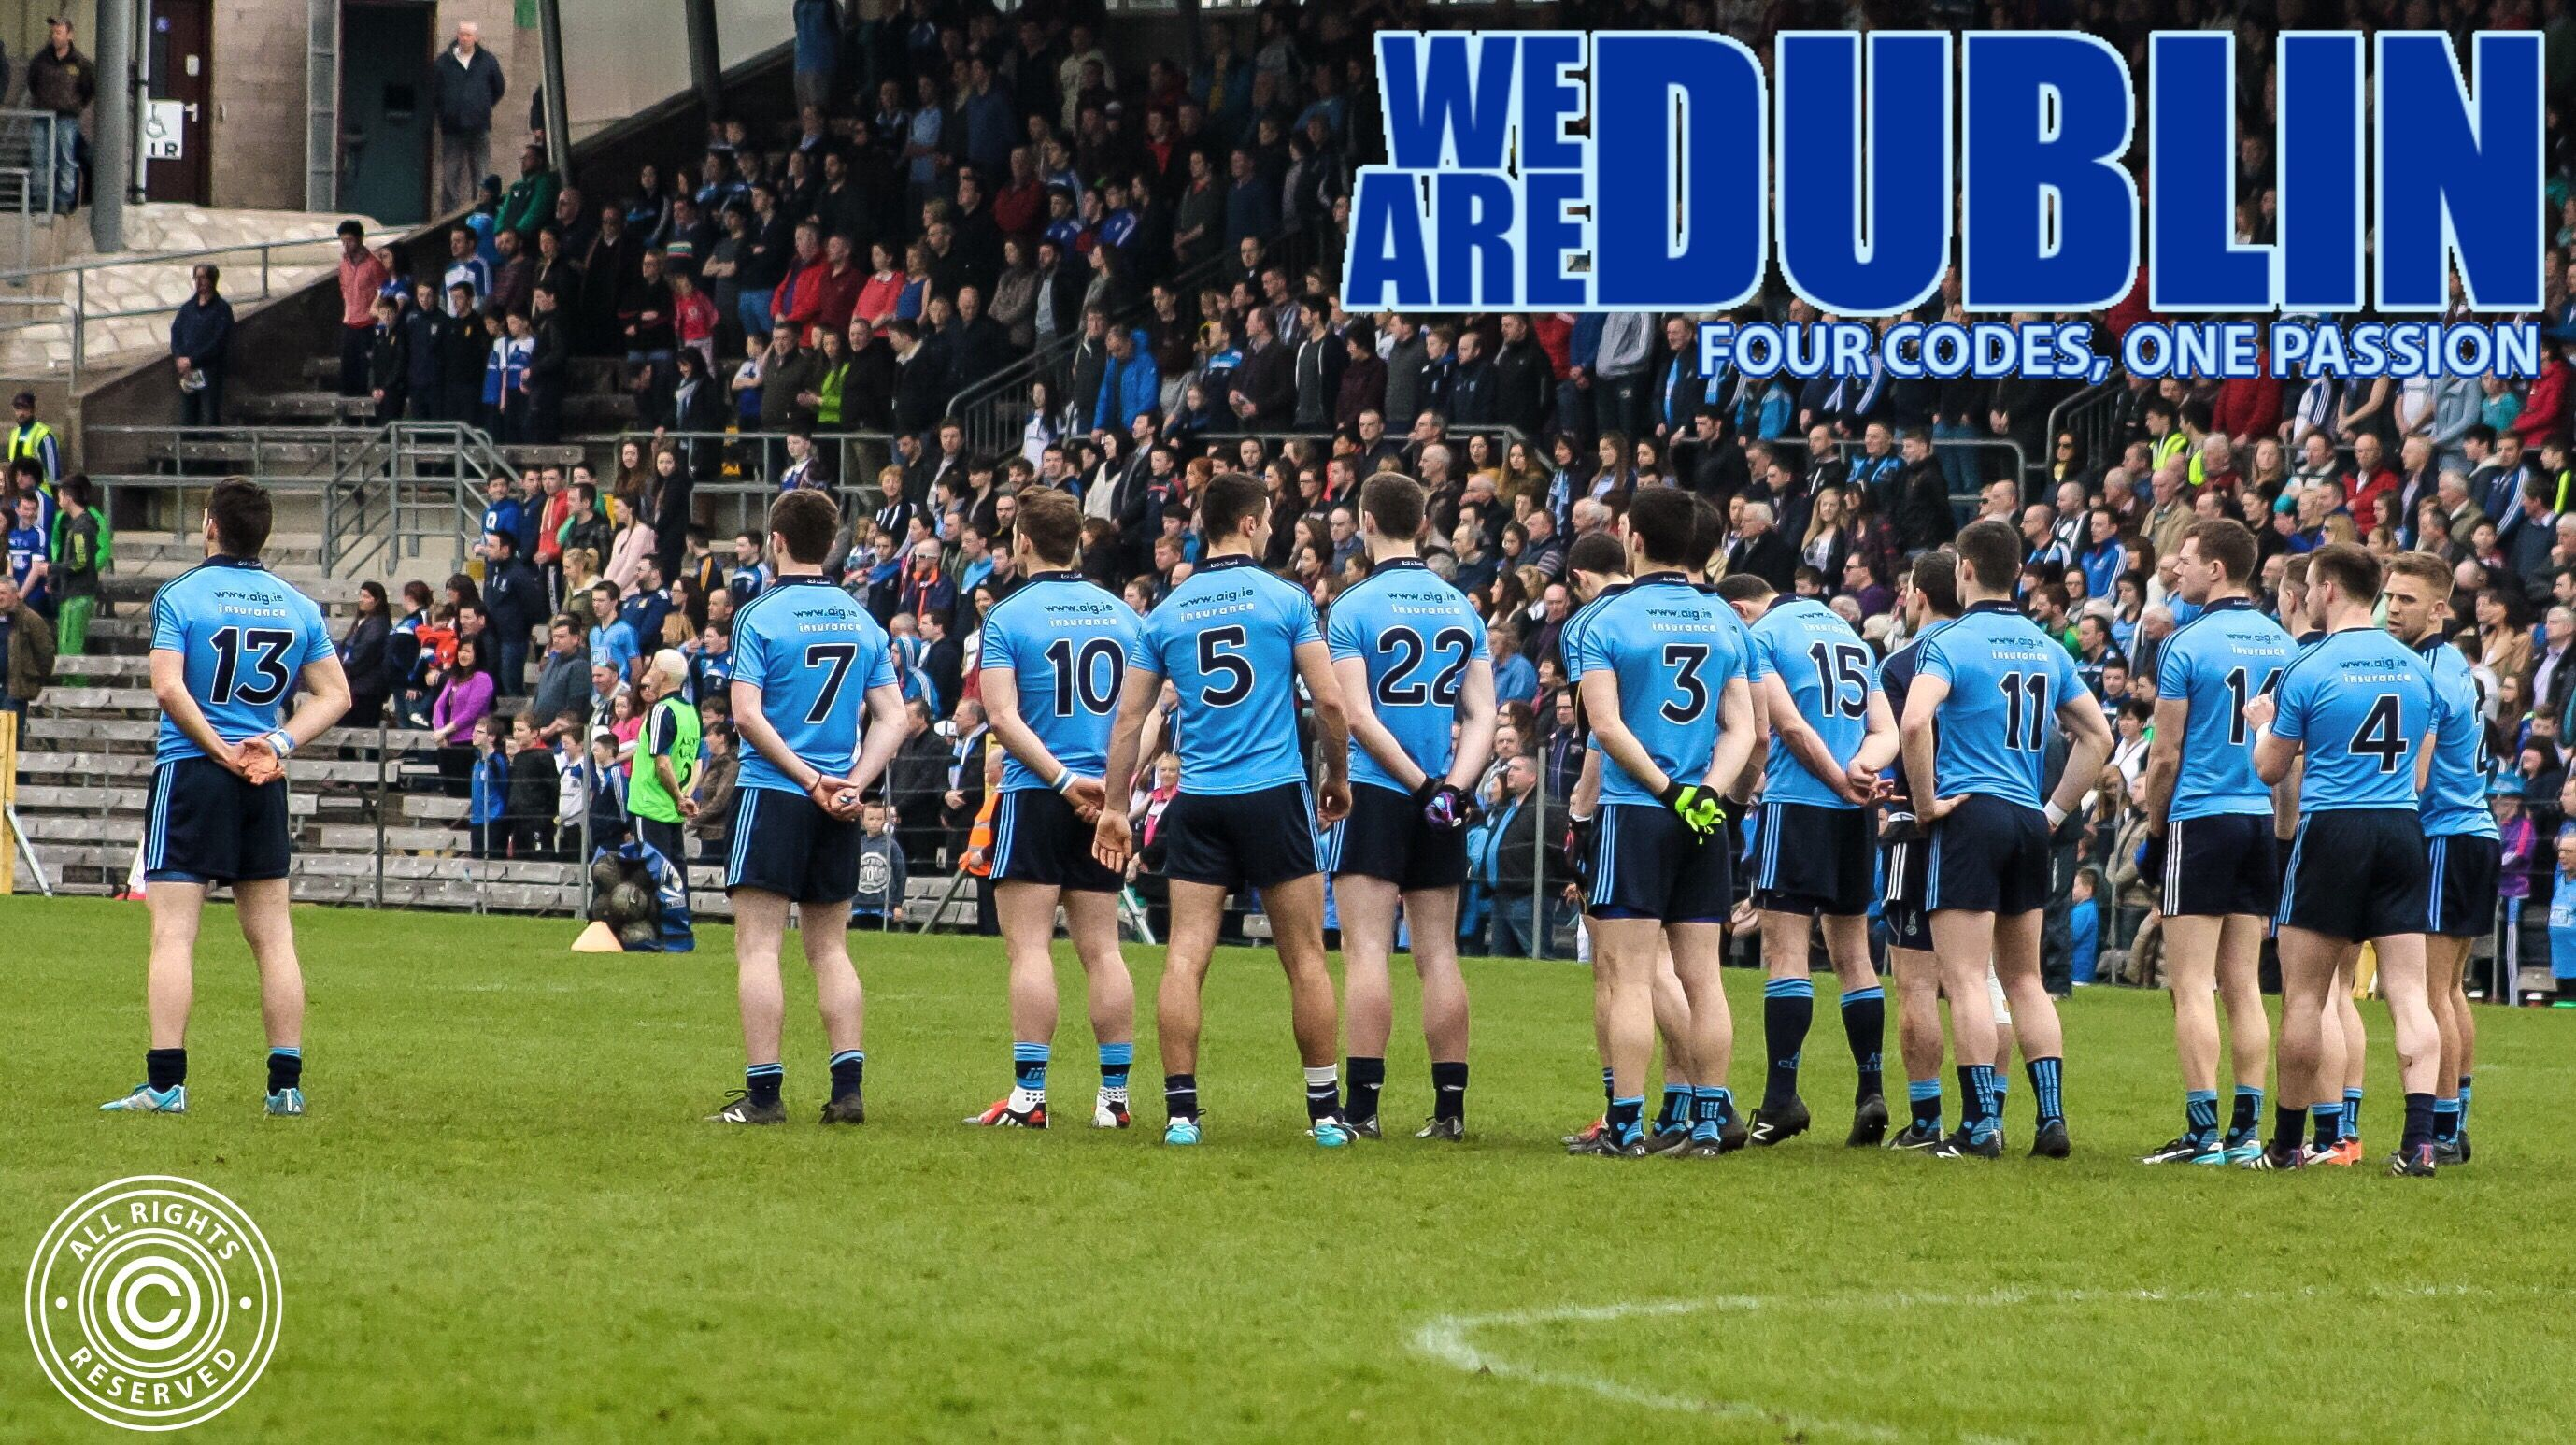 We Are Dublin VOTE FOR OUR DUBLIN NOMINATIONS FOR THE RTÉ